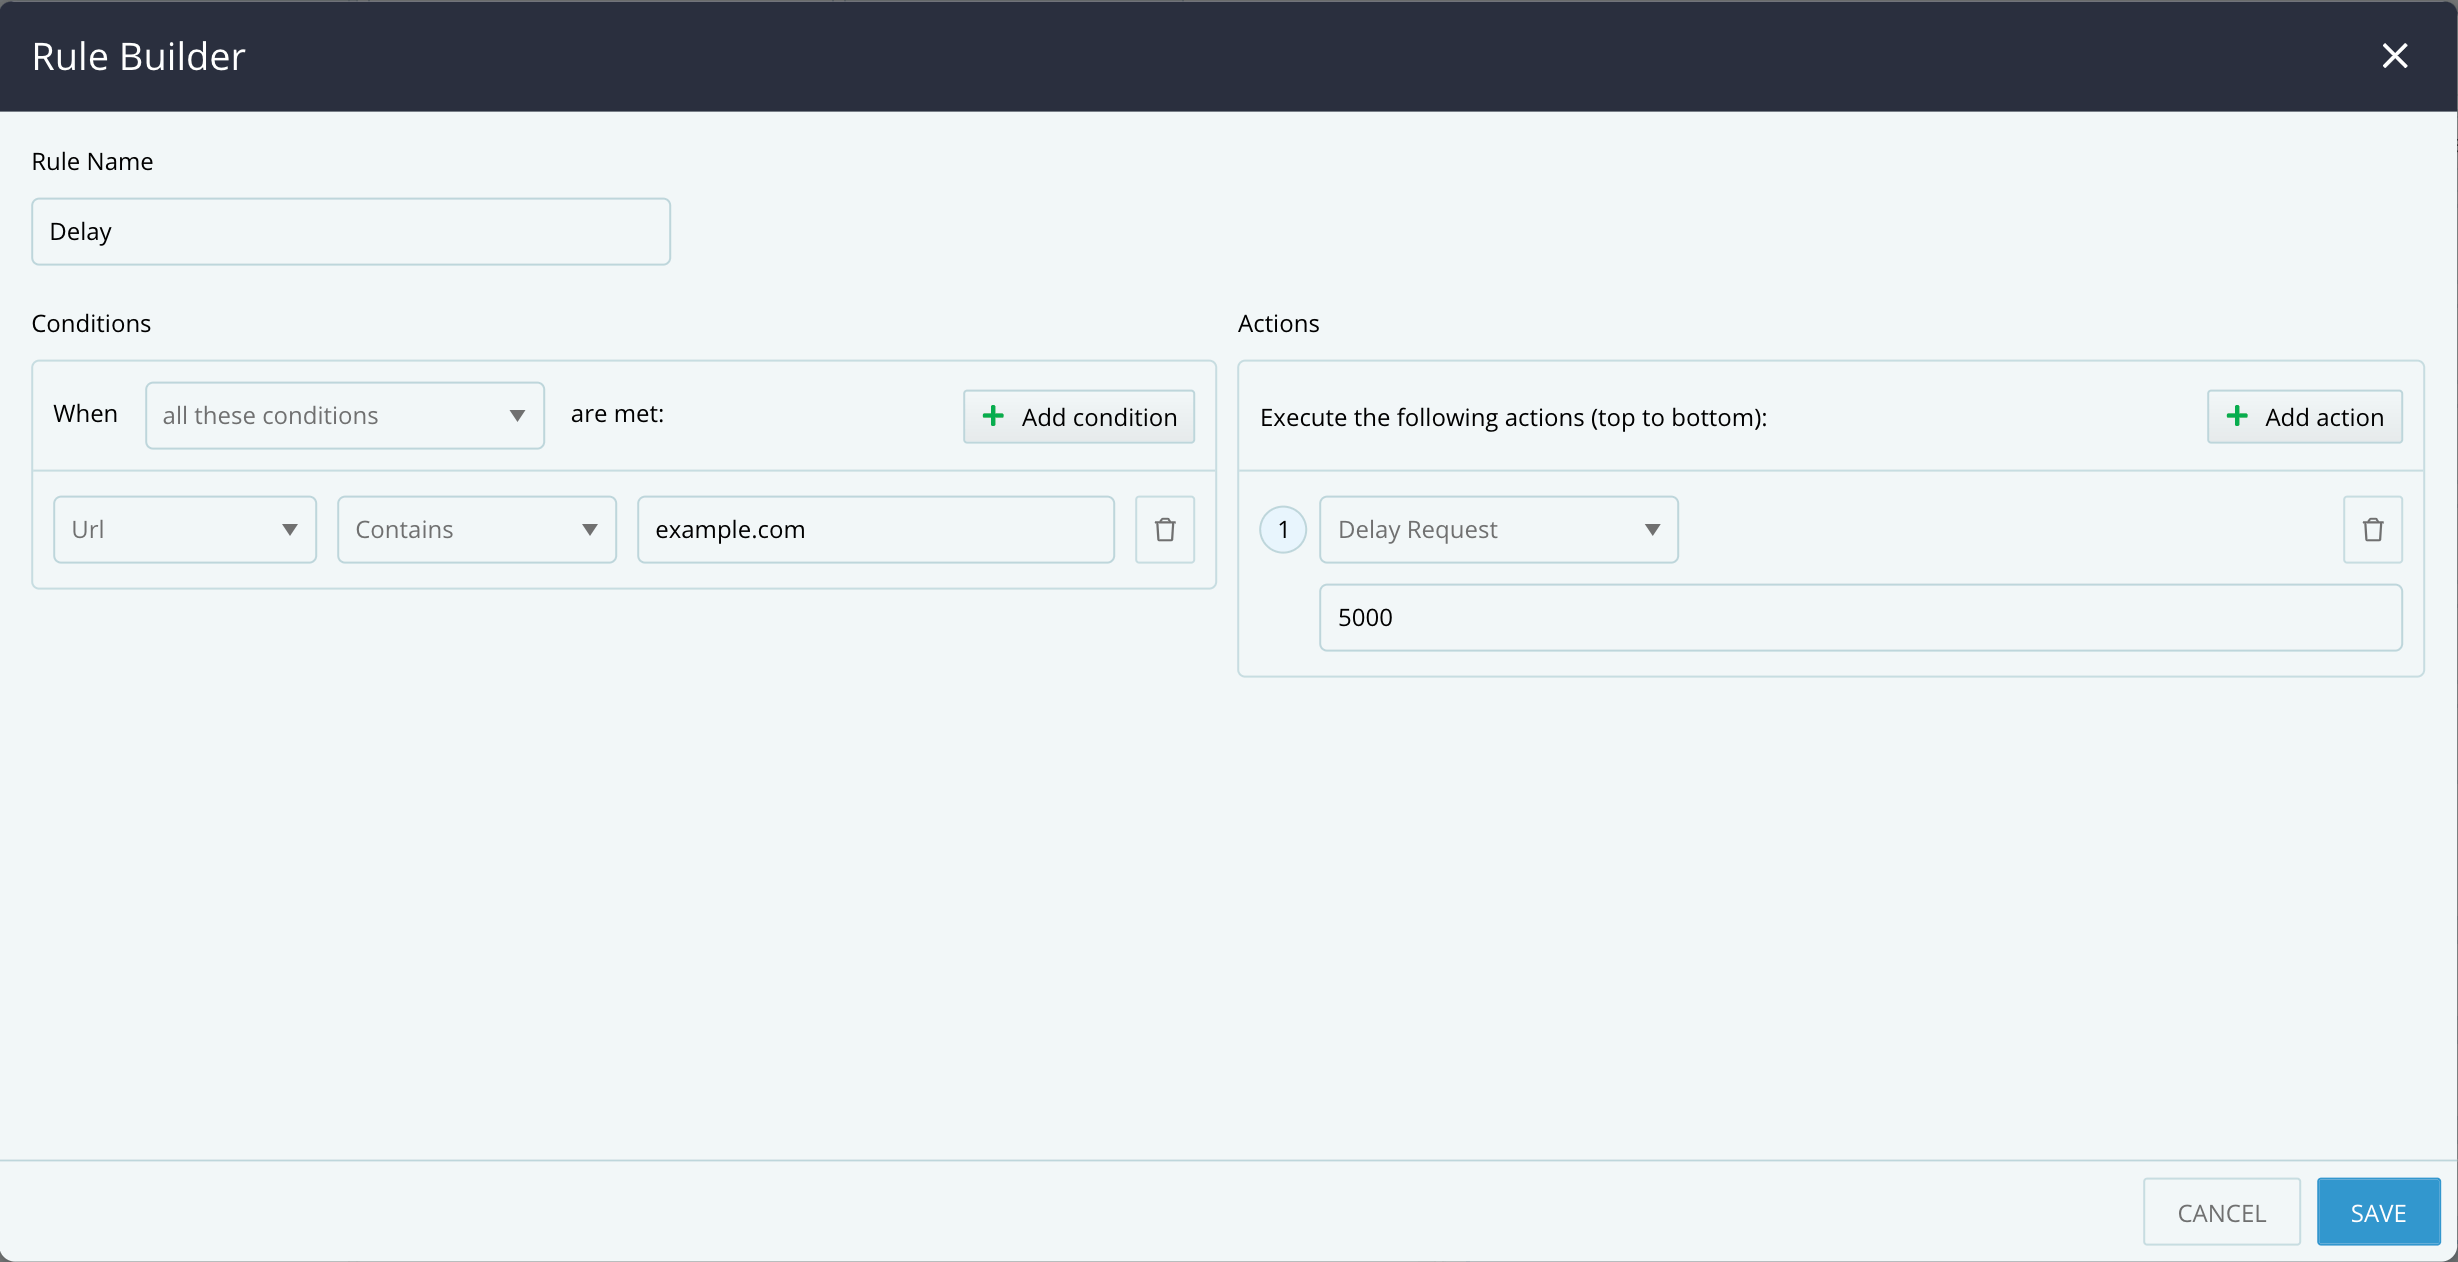 Rule Builder - Delay Request